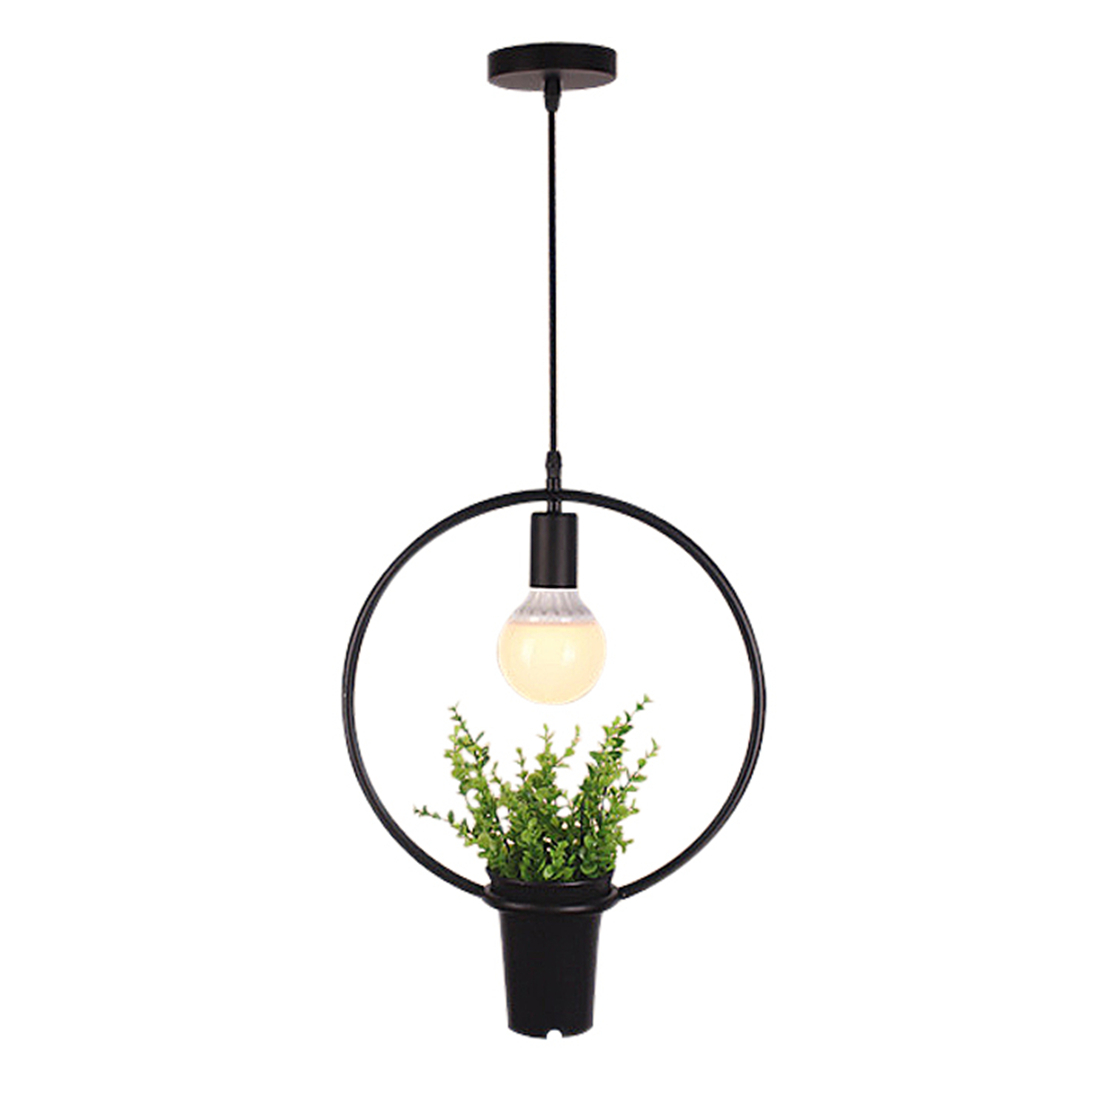 Black Ring Green Plant Hanging Lamps Retro Industrial Wind